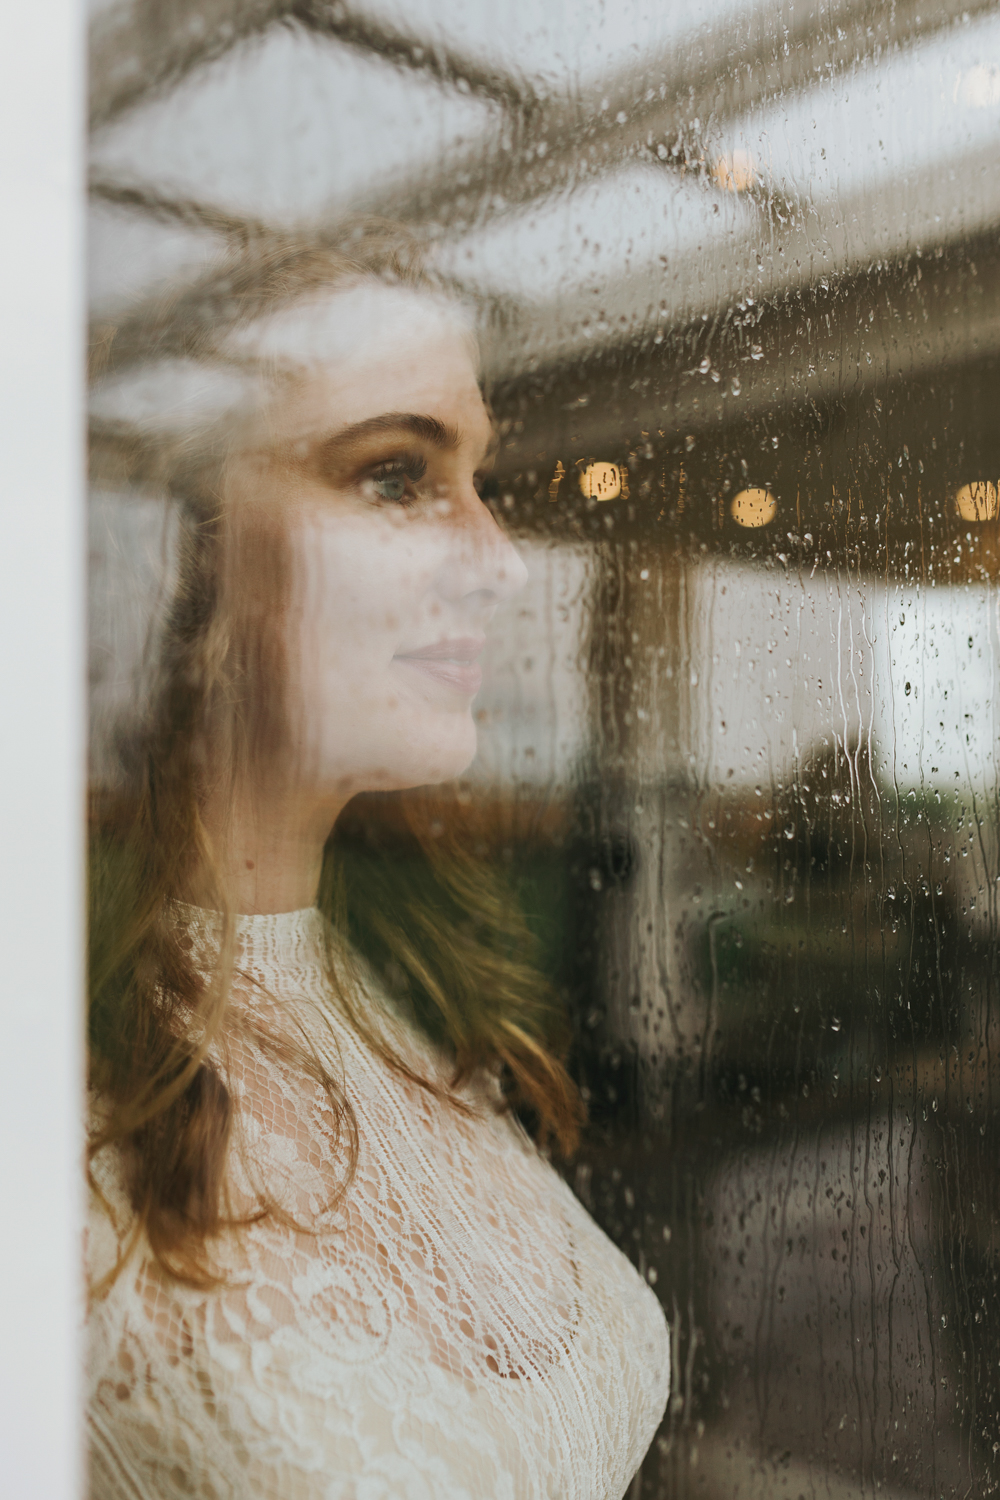 Bride looks out to rainy day on her wedding day.